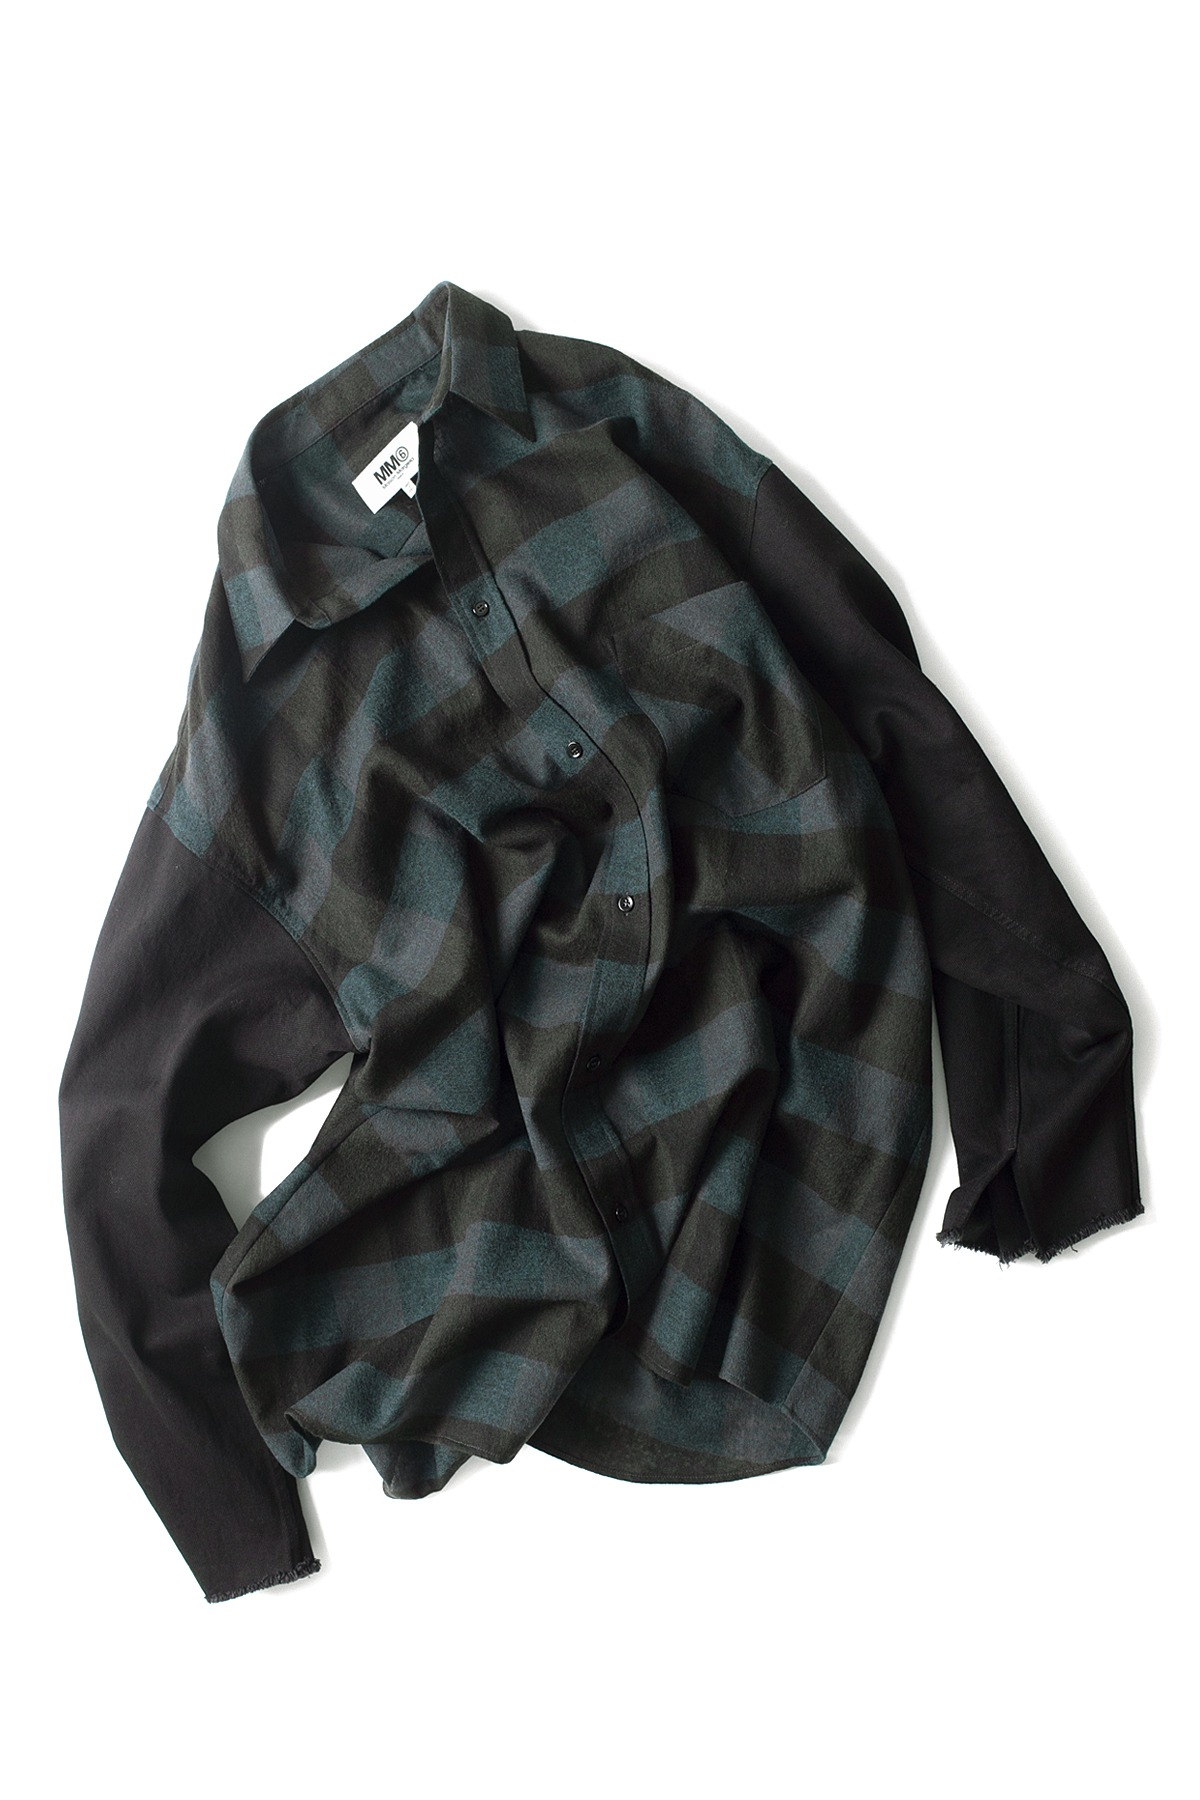 MM6 Maison Margiela : Oversized Shirt Petrol (Check)